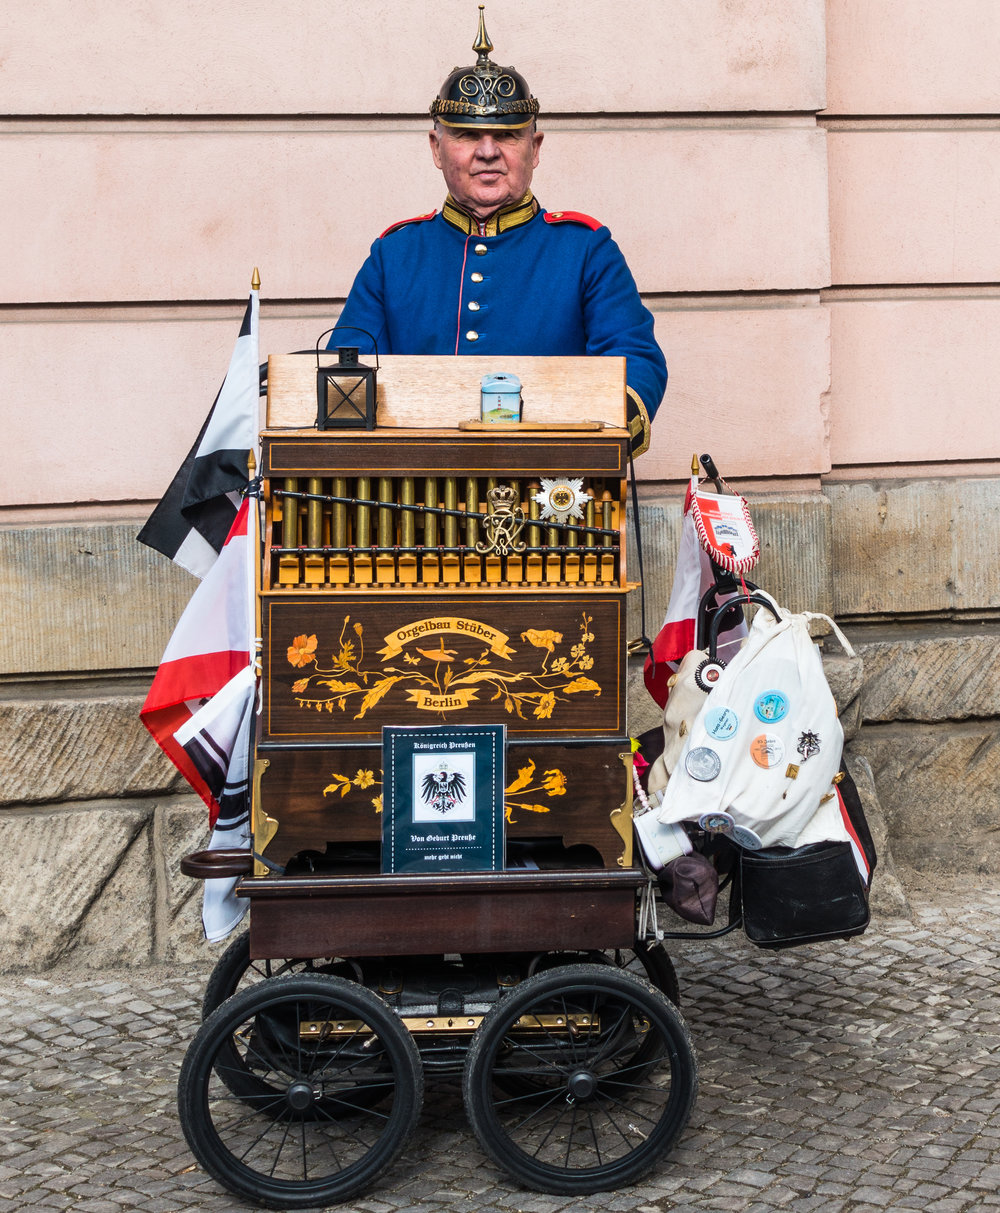 Organ grinder but no monkey at Unter den Linden